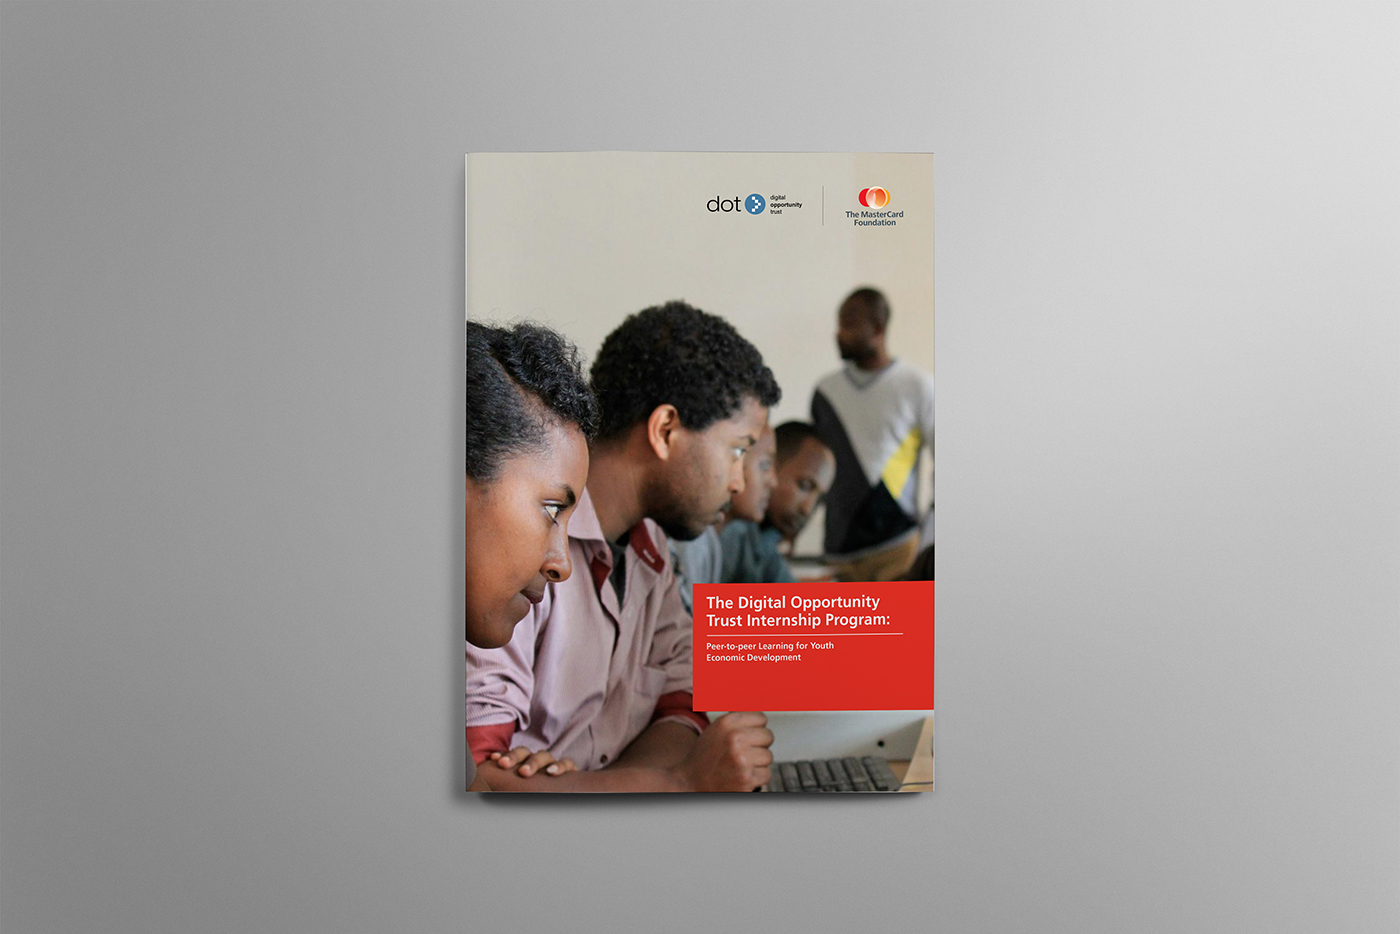 Cover design for Mastercard foundation by Touchwood Design located in Orangeville. This is the booklet for The Digital Opportunity Trust Internship Program.